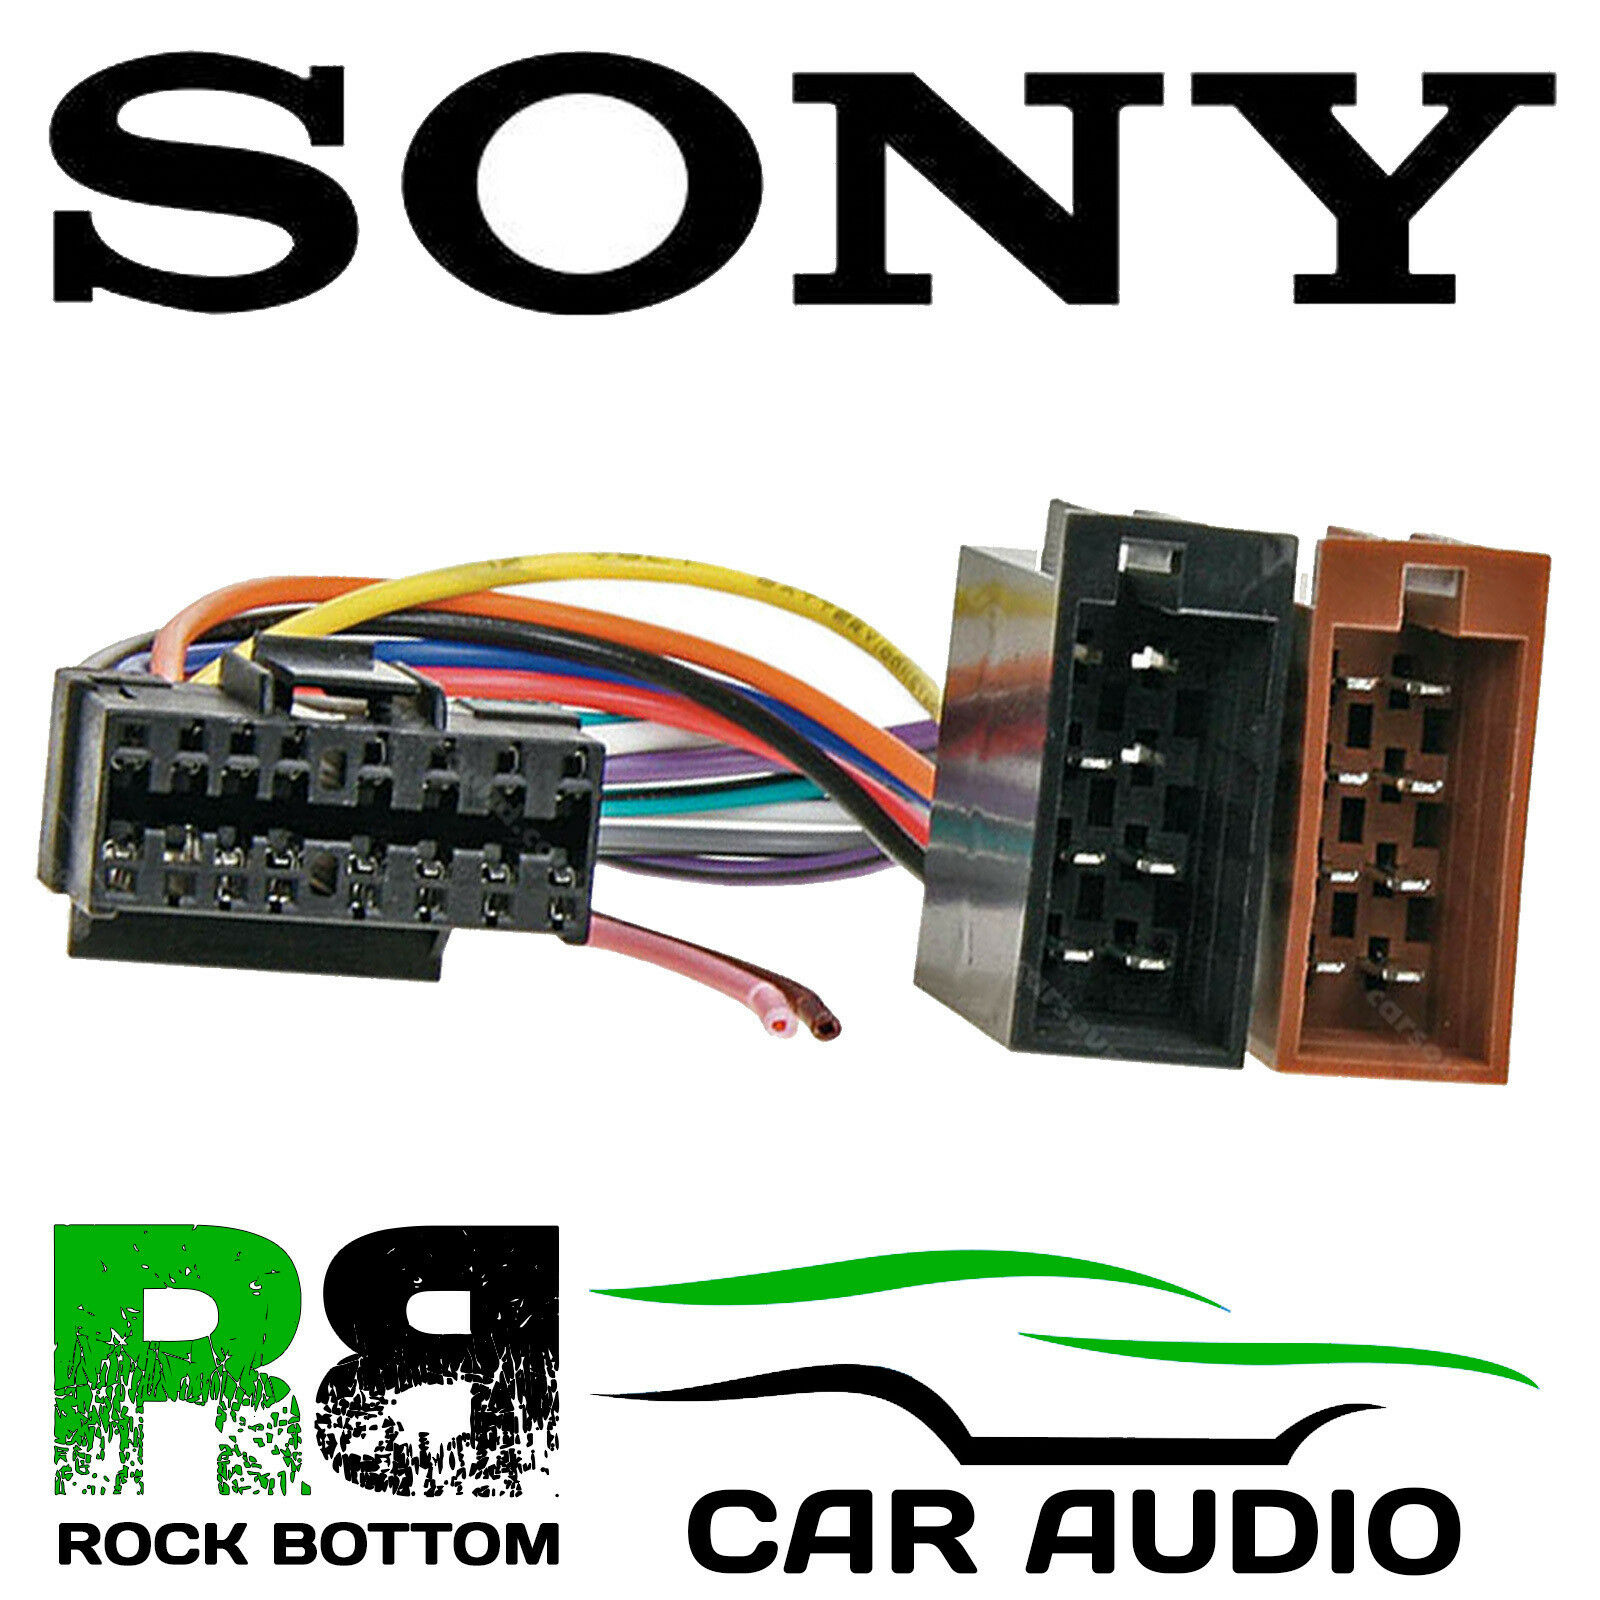 Sony Mdx Series Car Radio Stereo 16 Pin Wiring Harness Loom Iso Lead Ct21so01 1 Of 1free Shipping